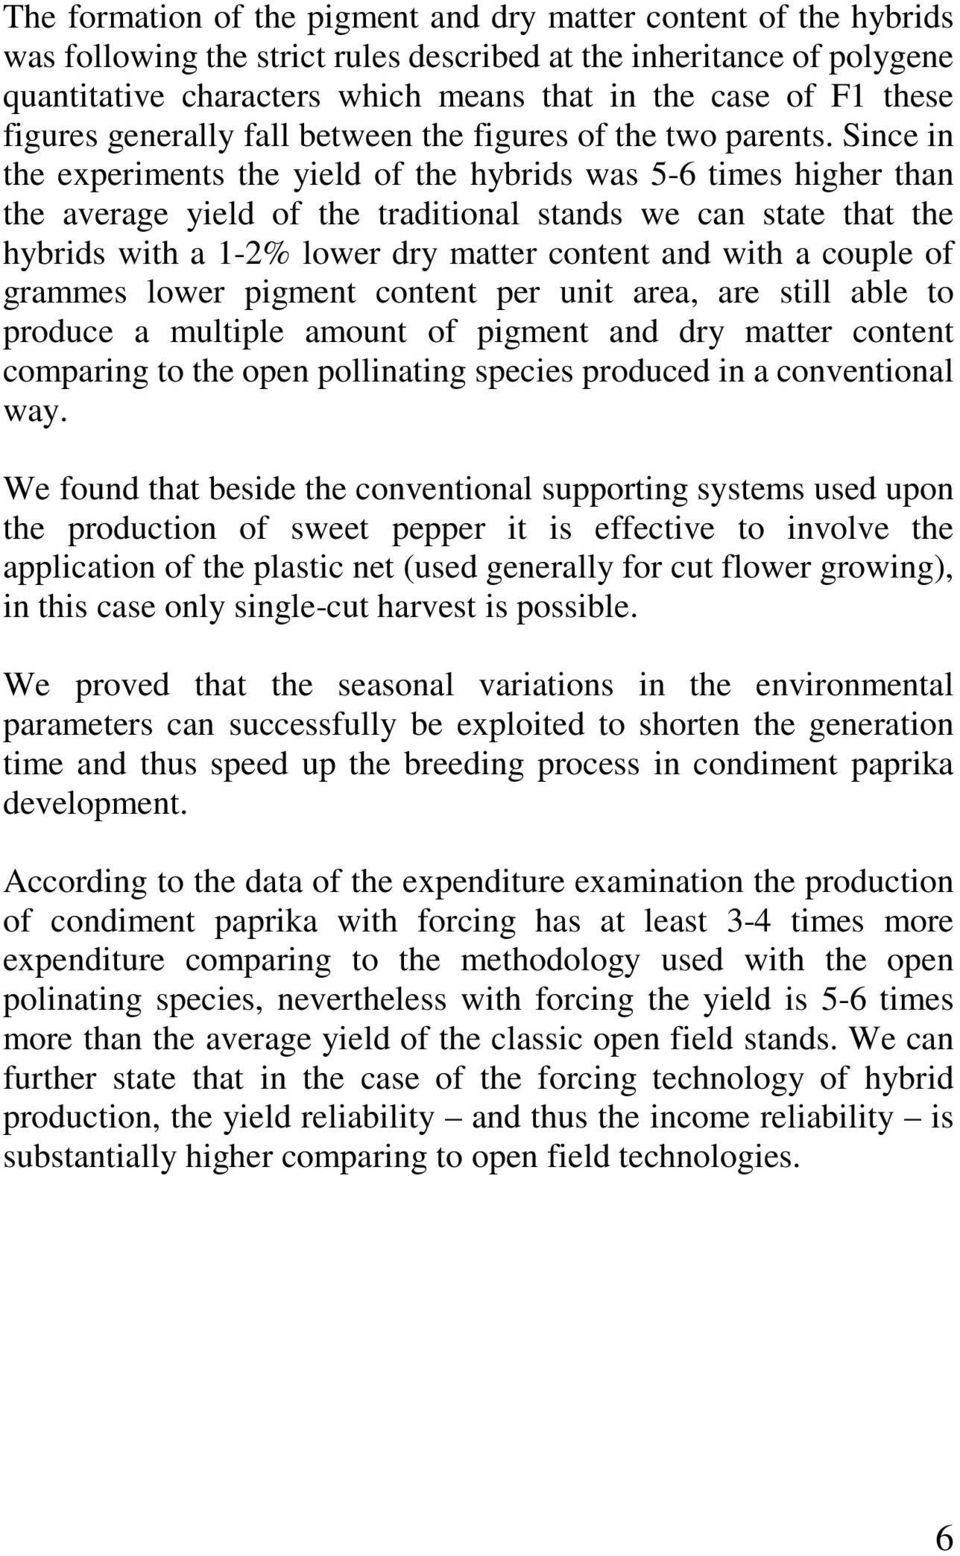 Since in the experiments the yield of the hybrids was 5-6 times higher than the average yield of the traditional stands we can state that the hybrids with a 1-2% lower dry matter content and with a